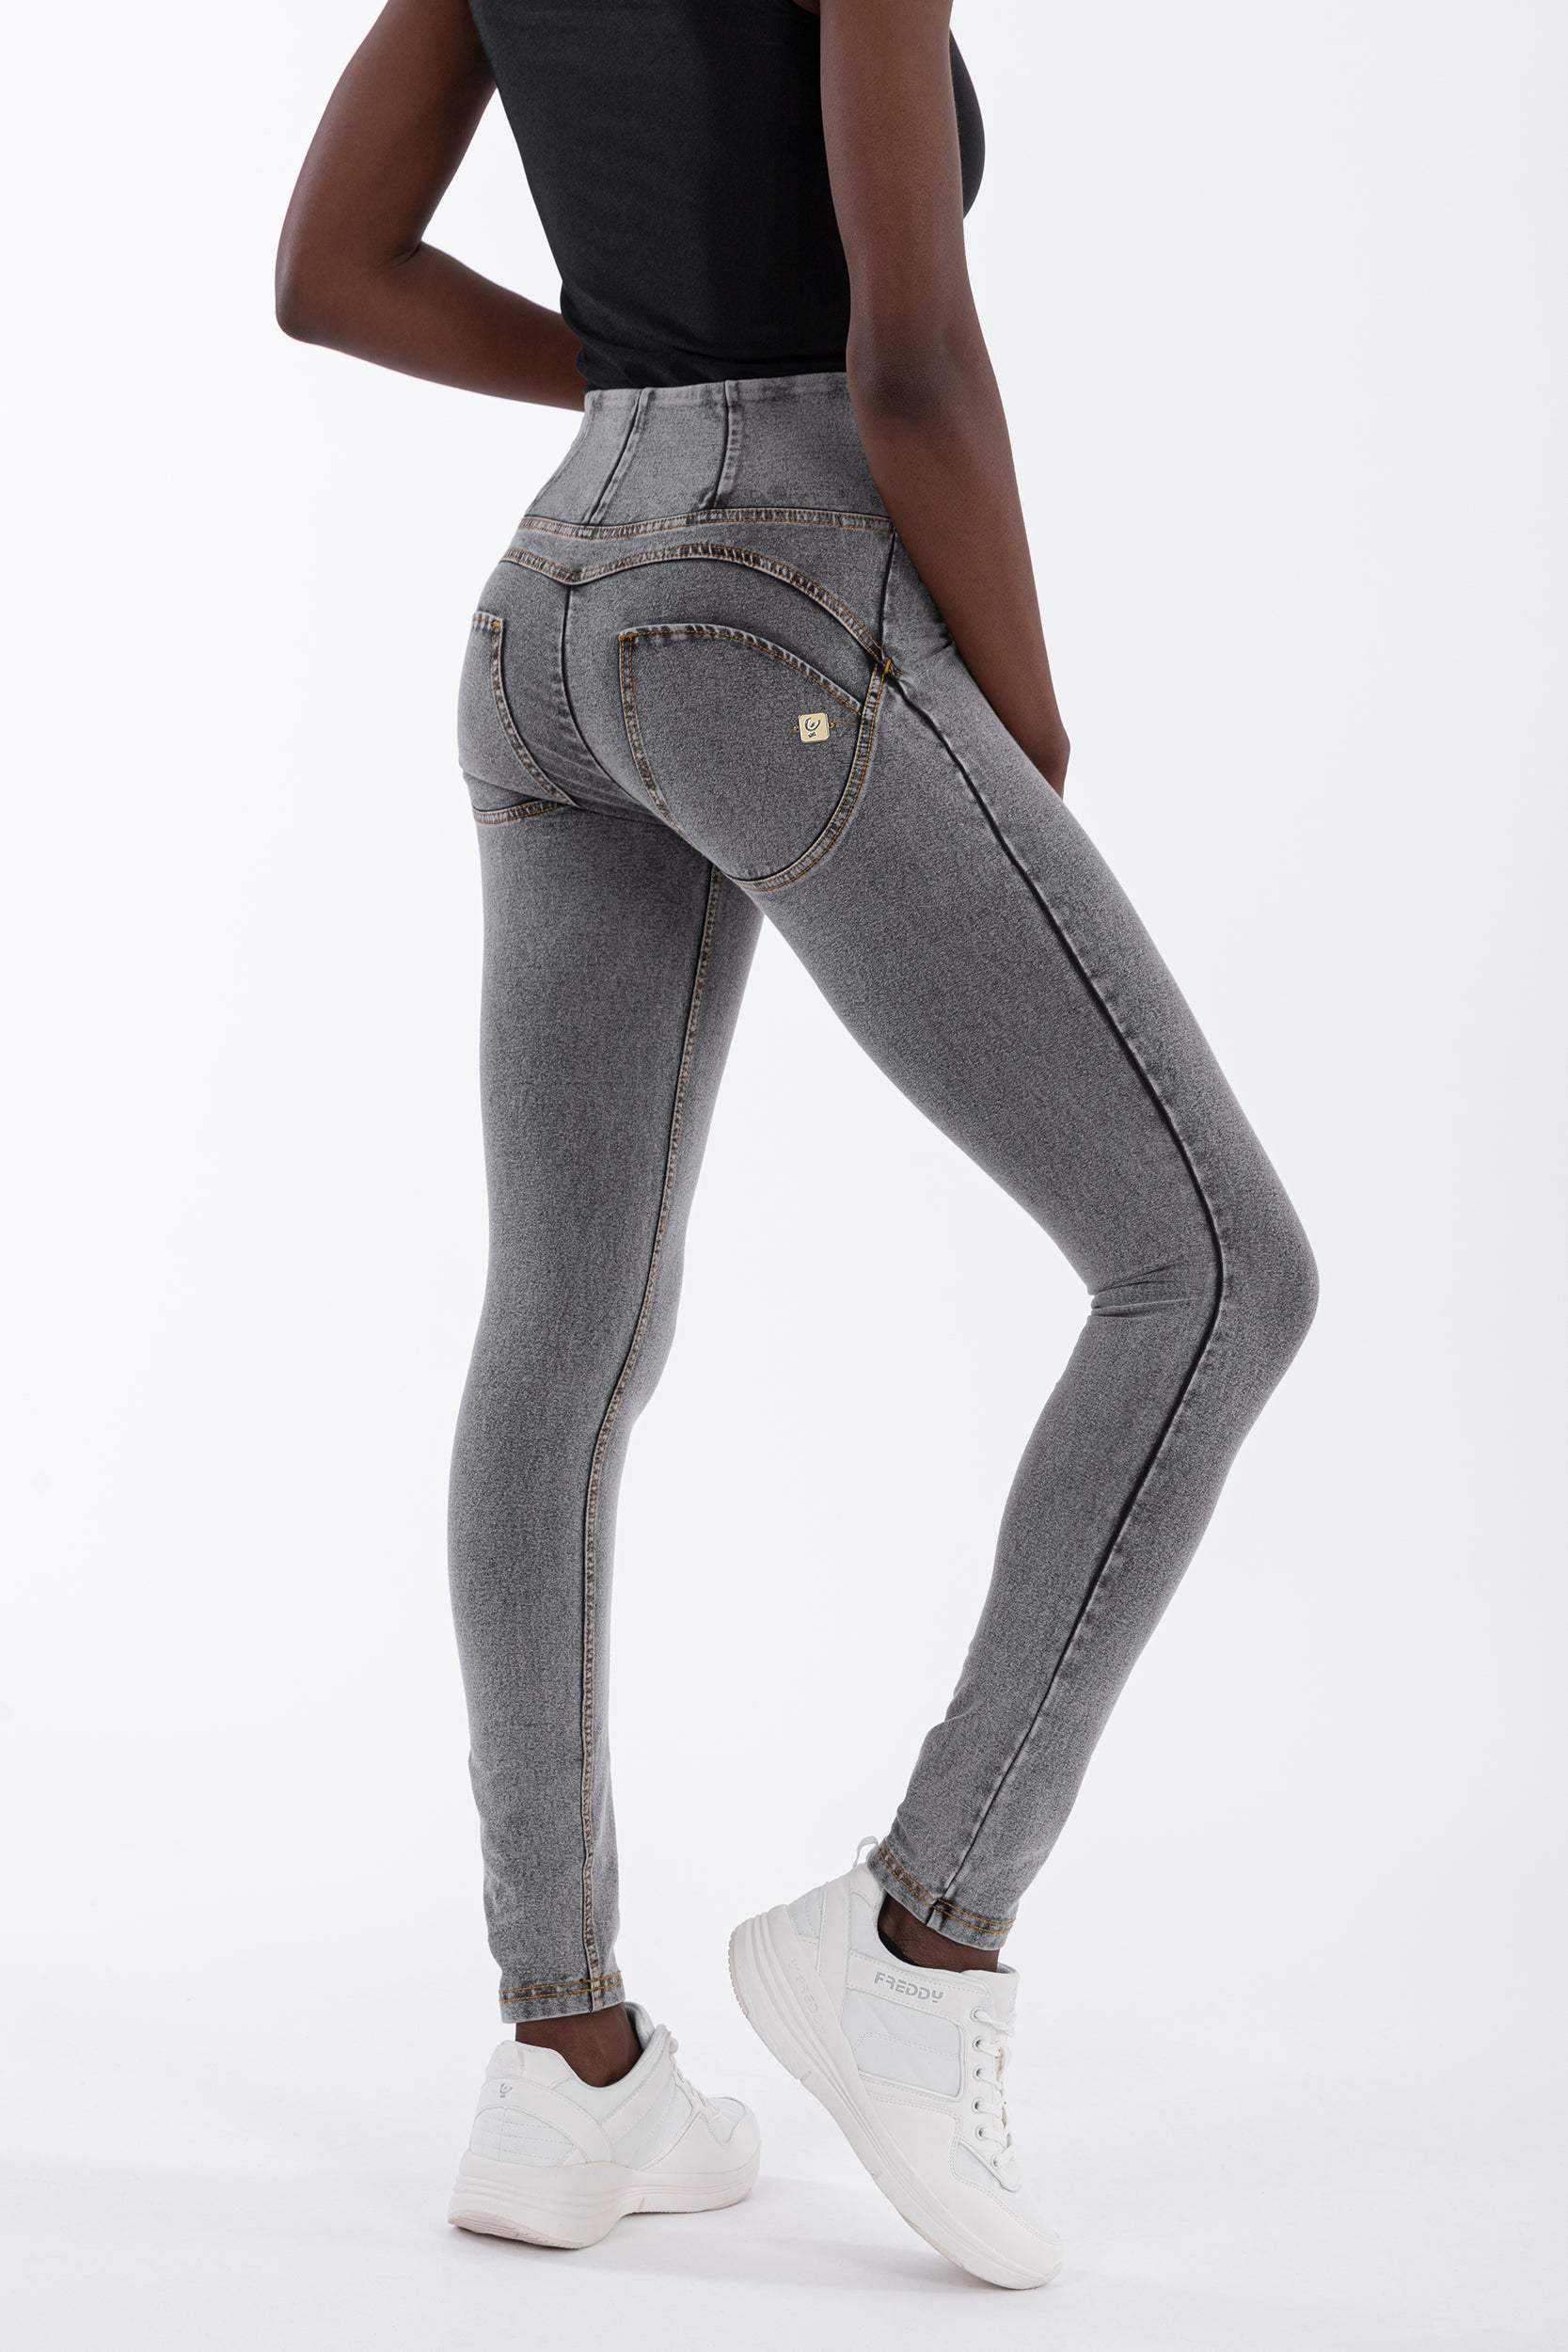 7/8 ANKLE LEG GREY DENIM HIGH WAIST SELF TONE ZIP